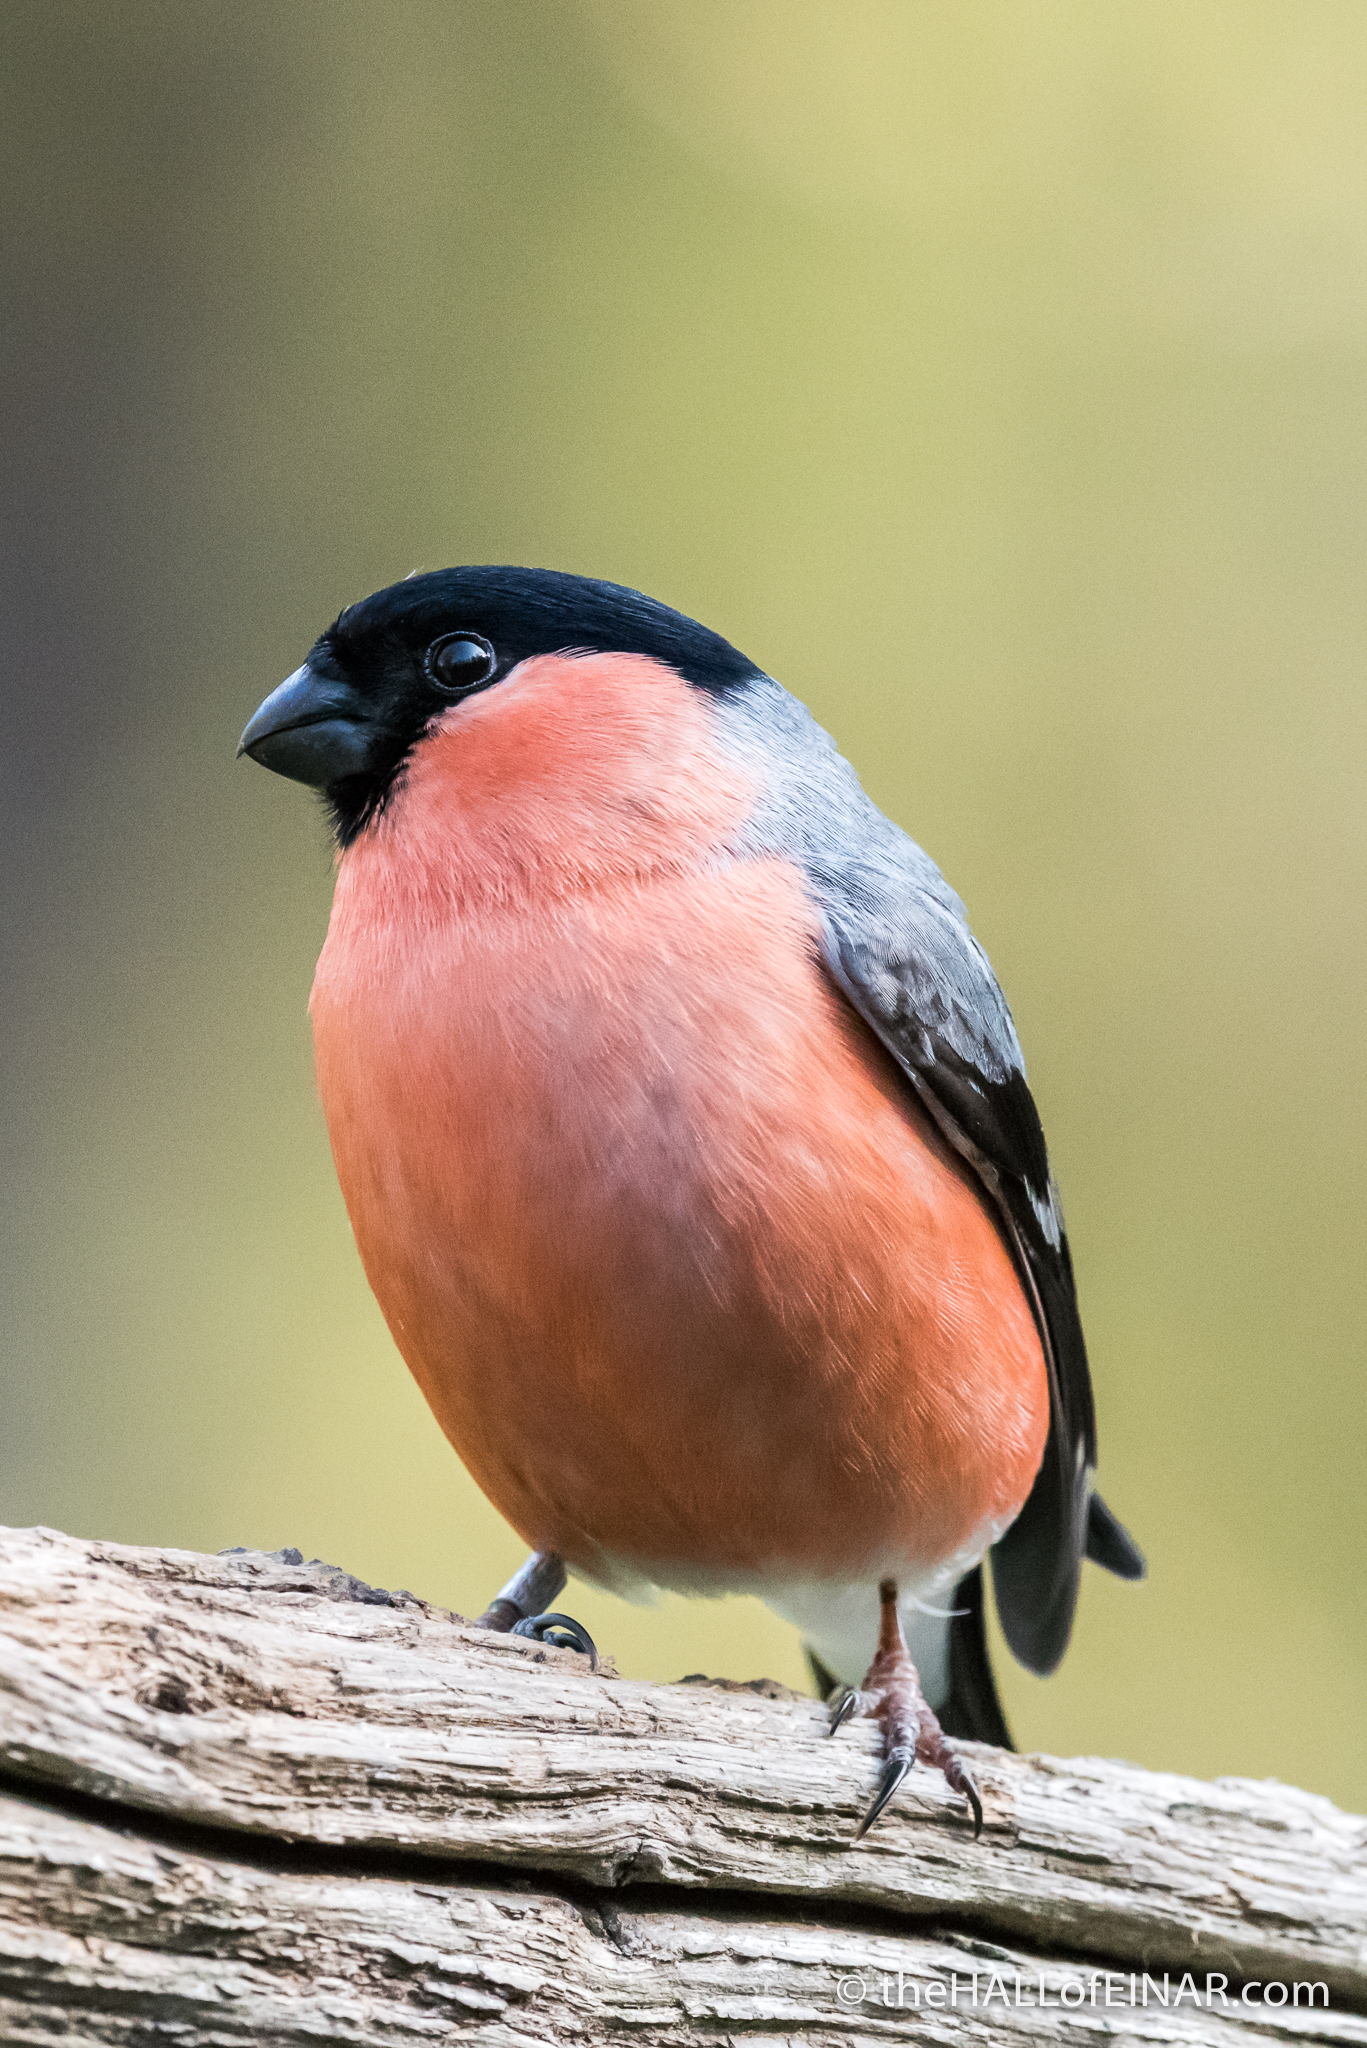 Bullfinch - The Hall of Einar - photograph (c) David Bailey (not the)